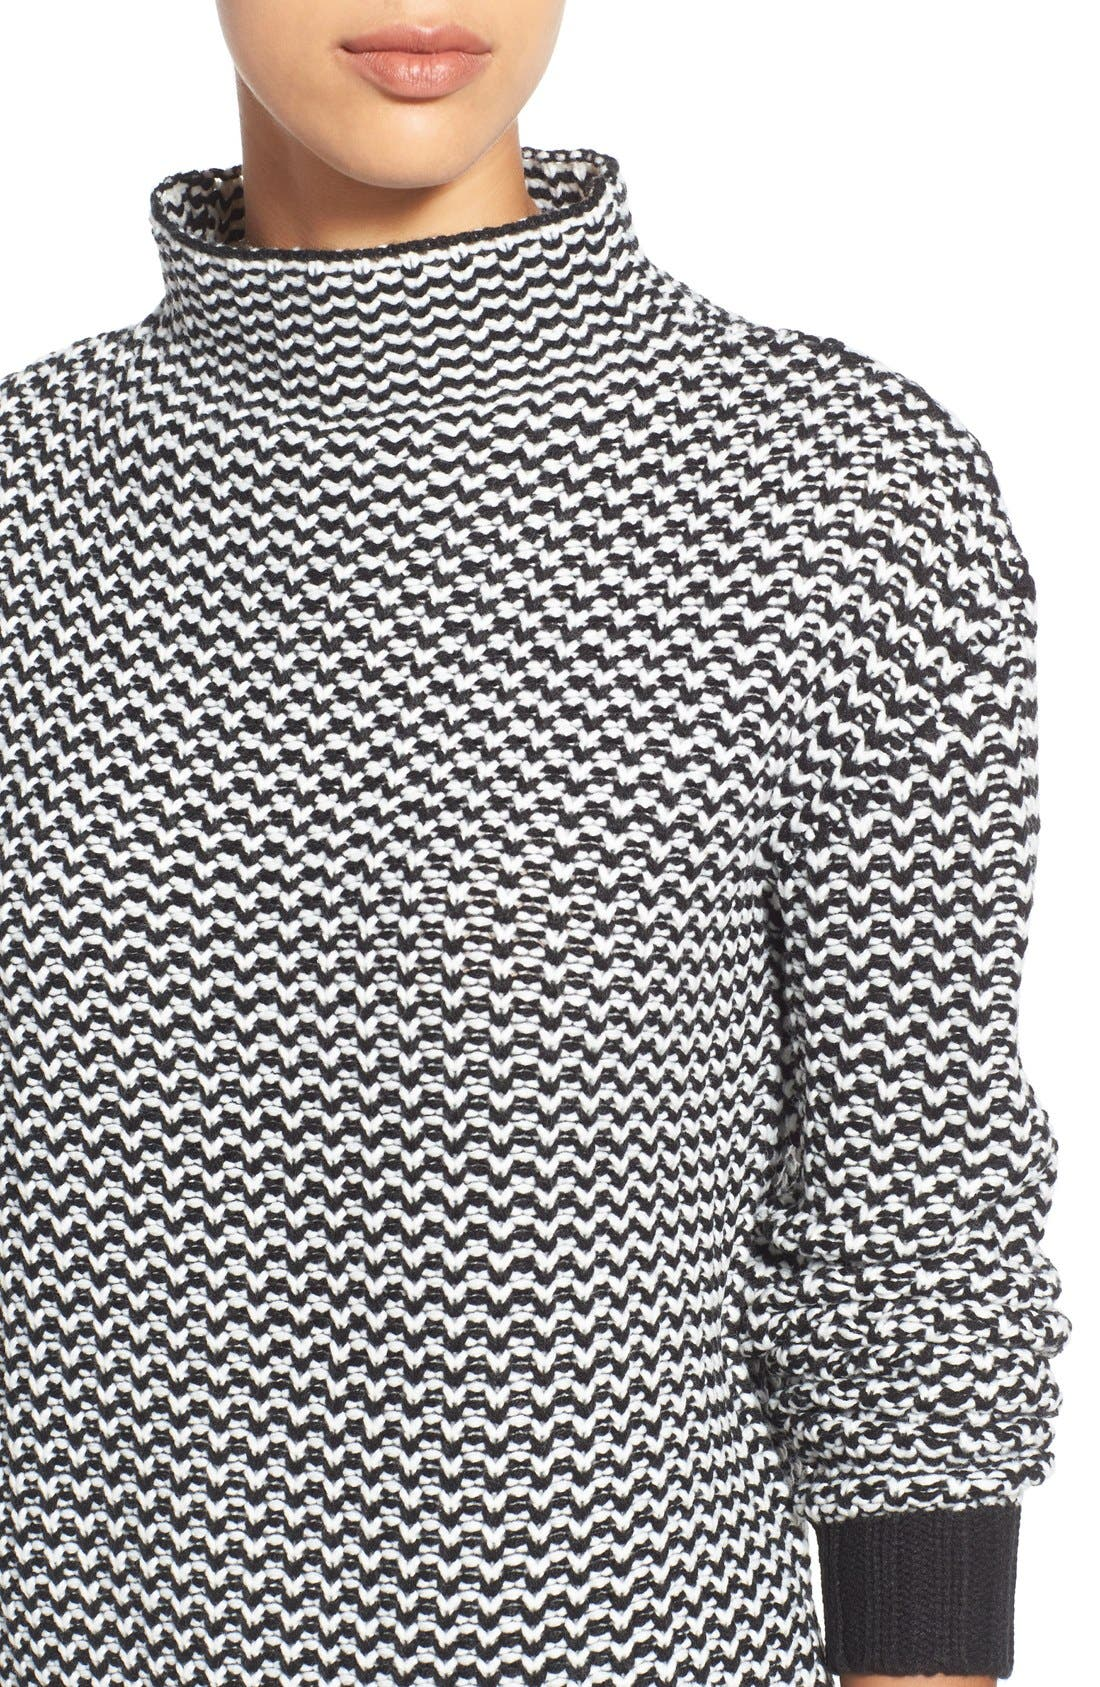 'Roller' Mock Neck Sweater,                             Main thumbnail 1, color,                             002